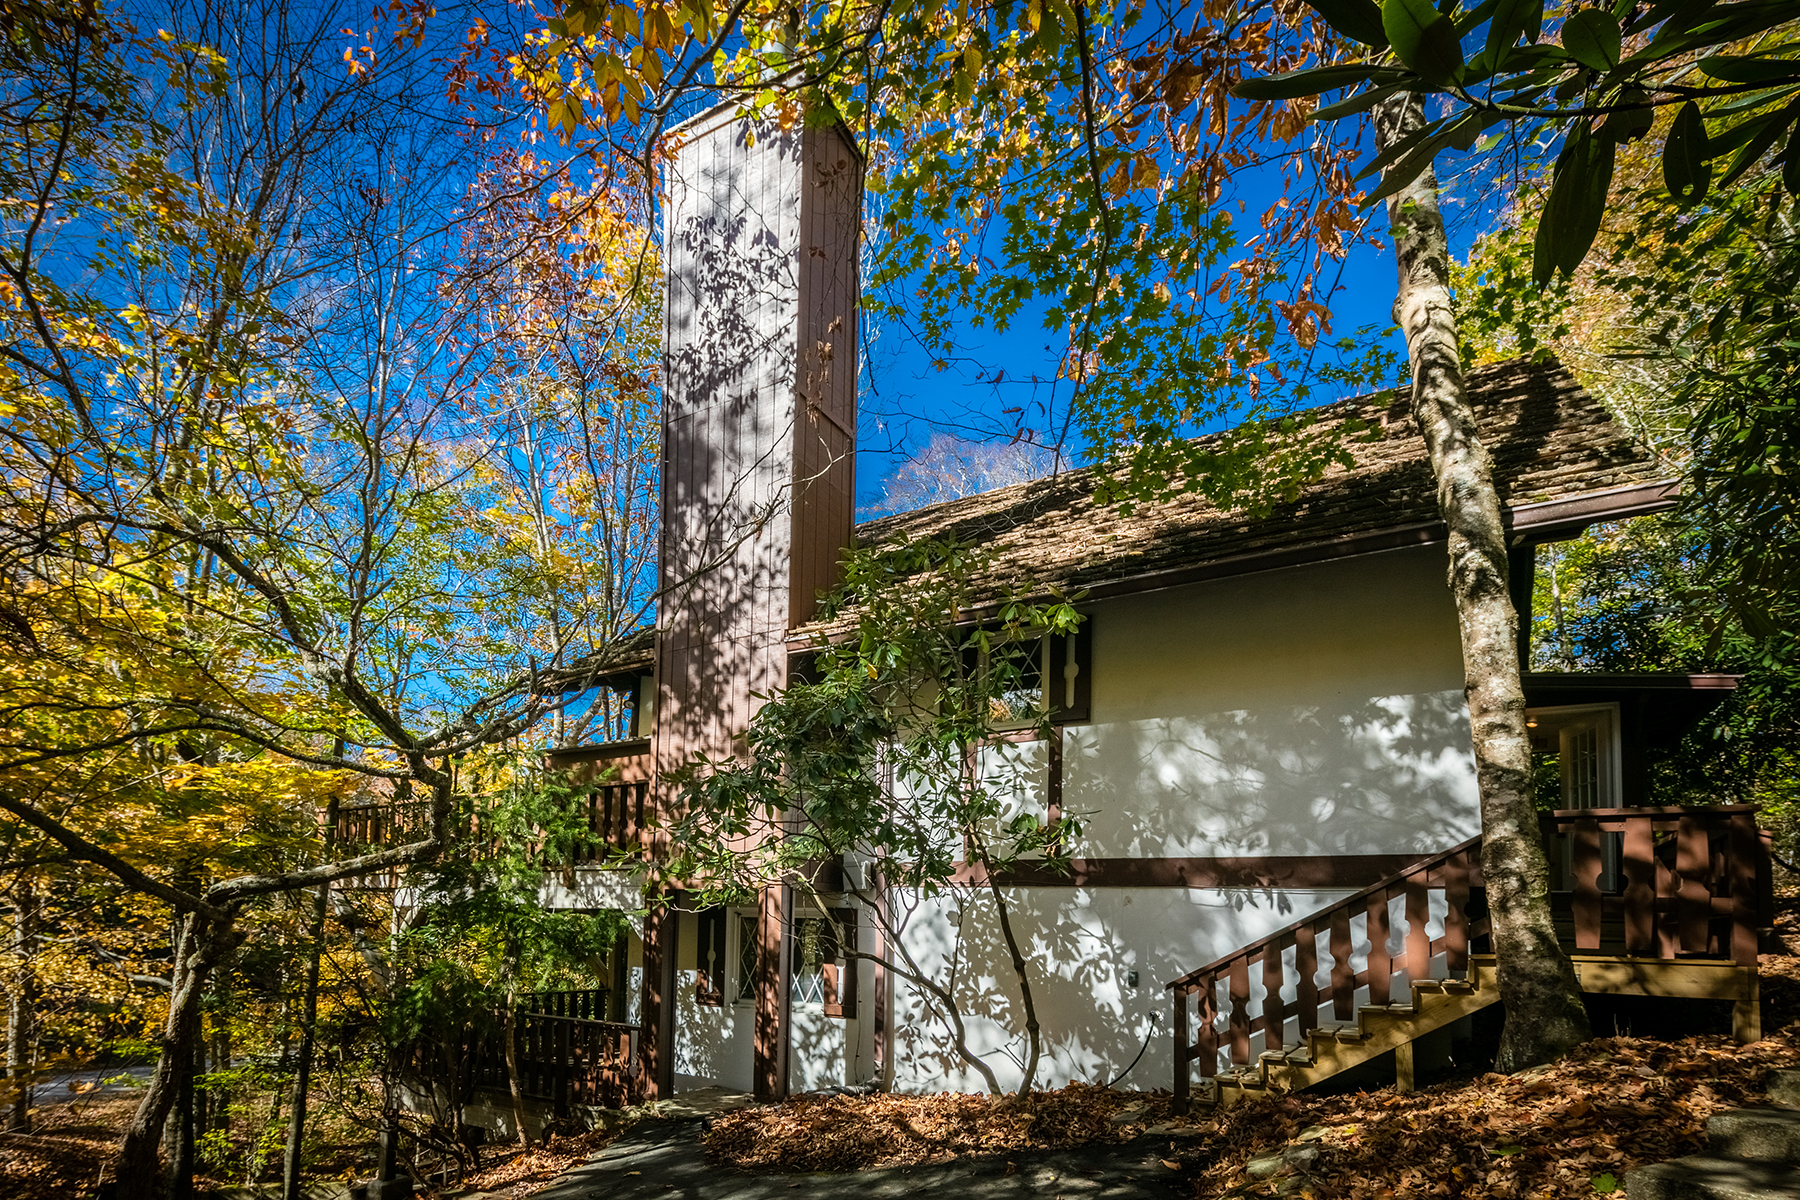 Single Family Home for Sale at BEECH MOUNTAIN - CHARTER HILLS 204 Spring Branch Road Beech Mountain, North Carolina, 28604 United States